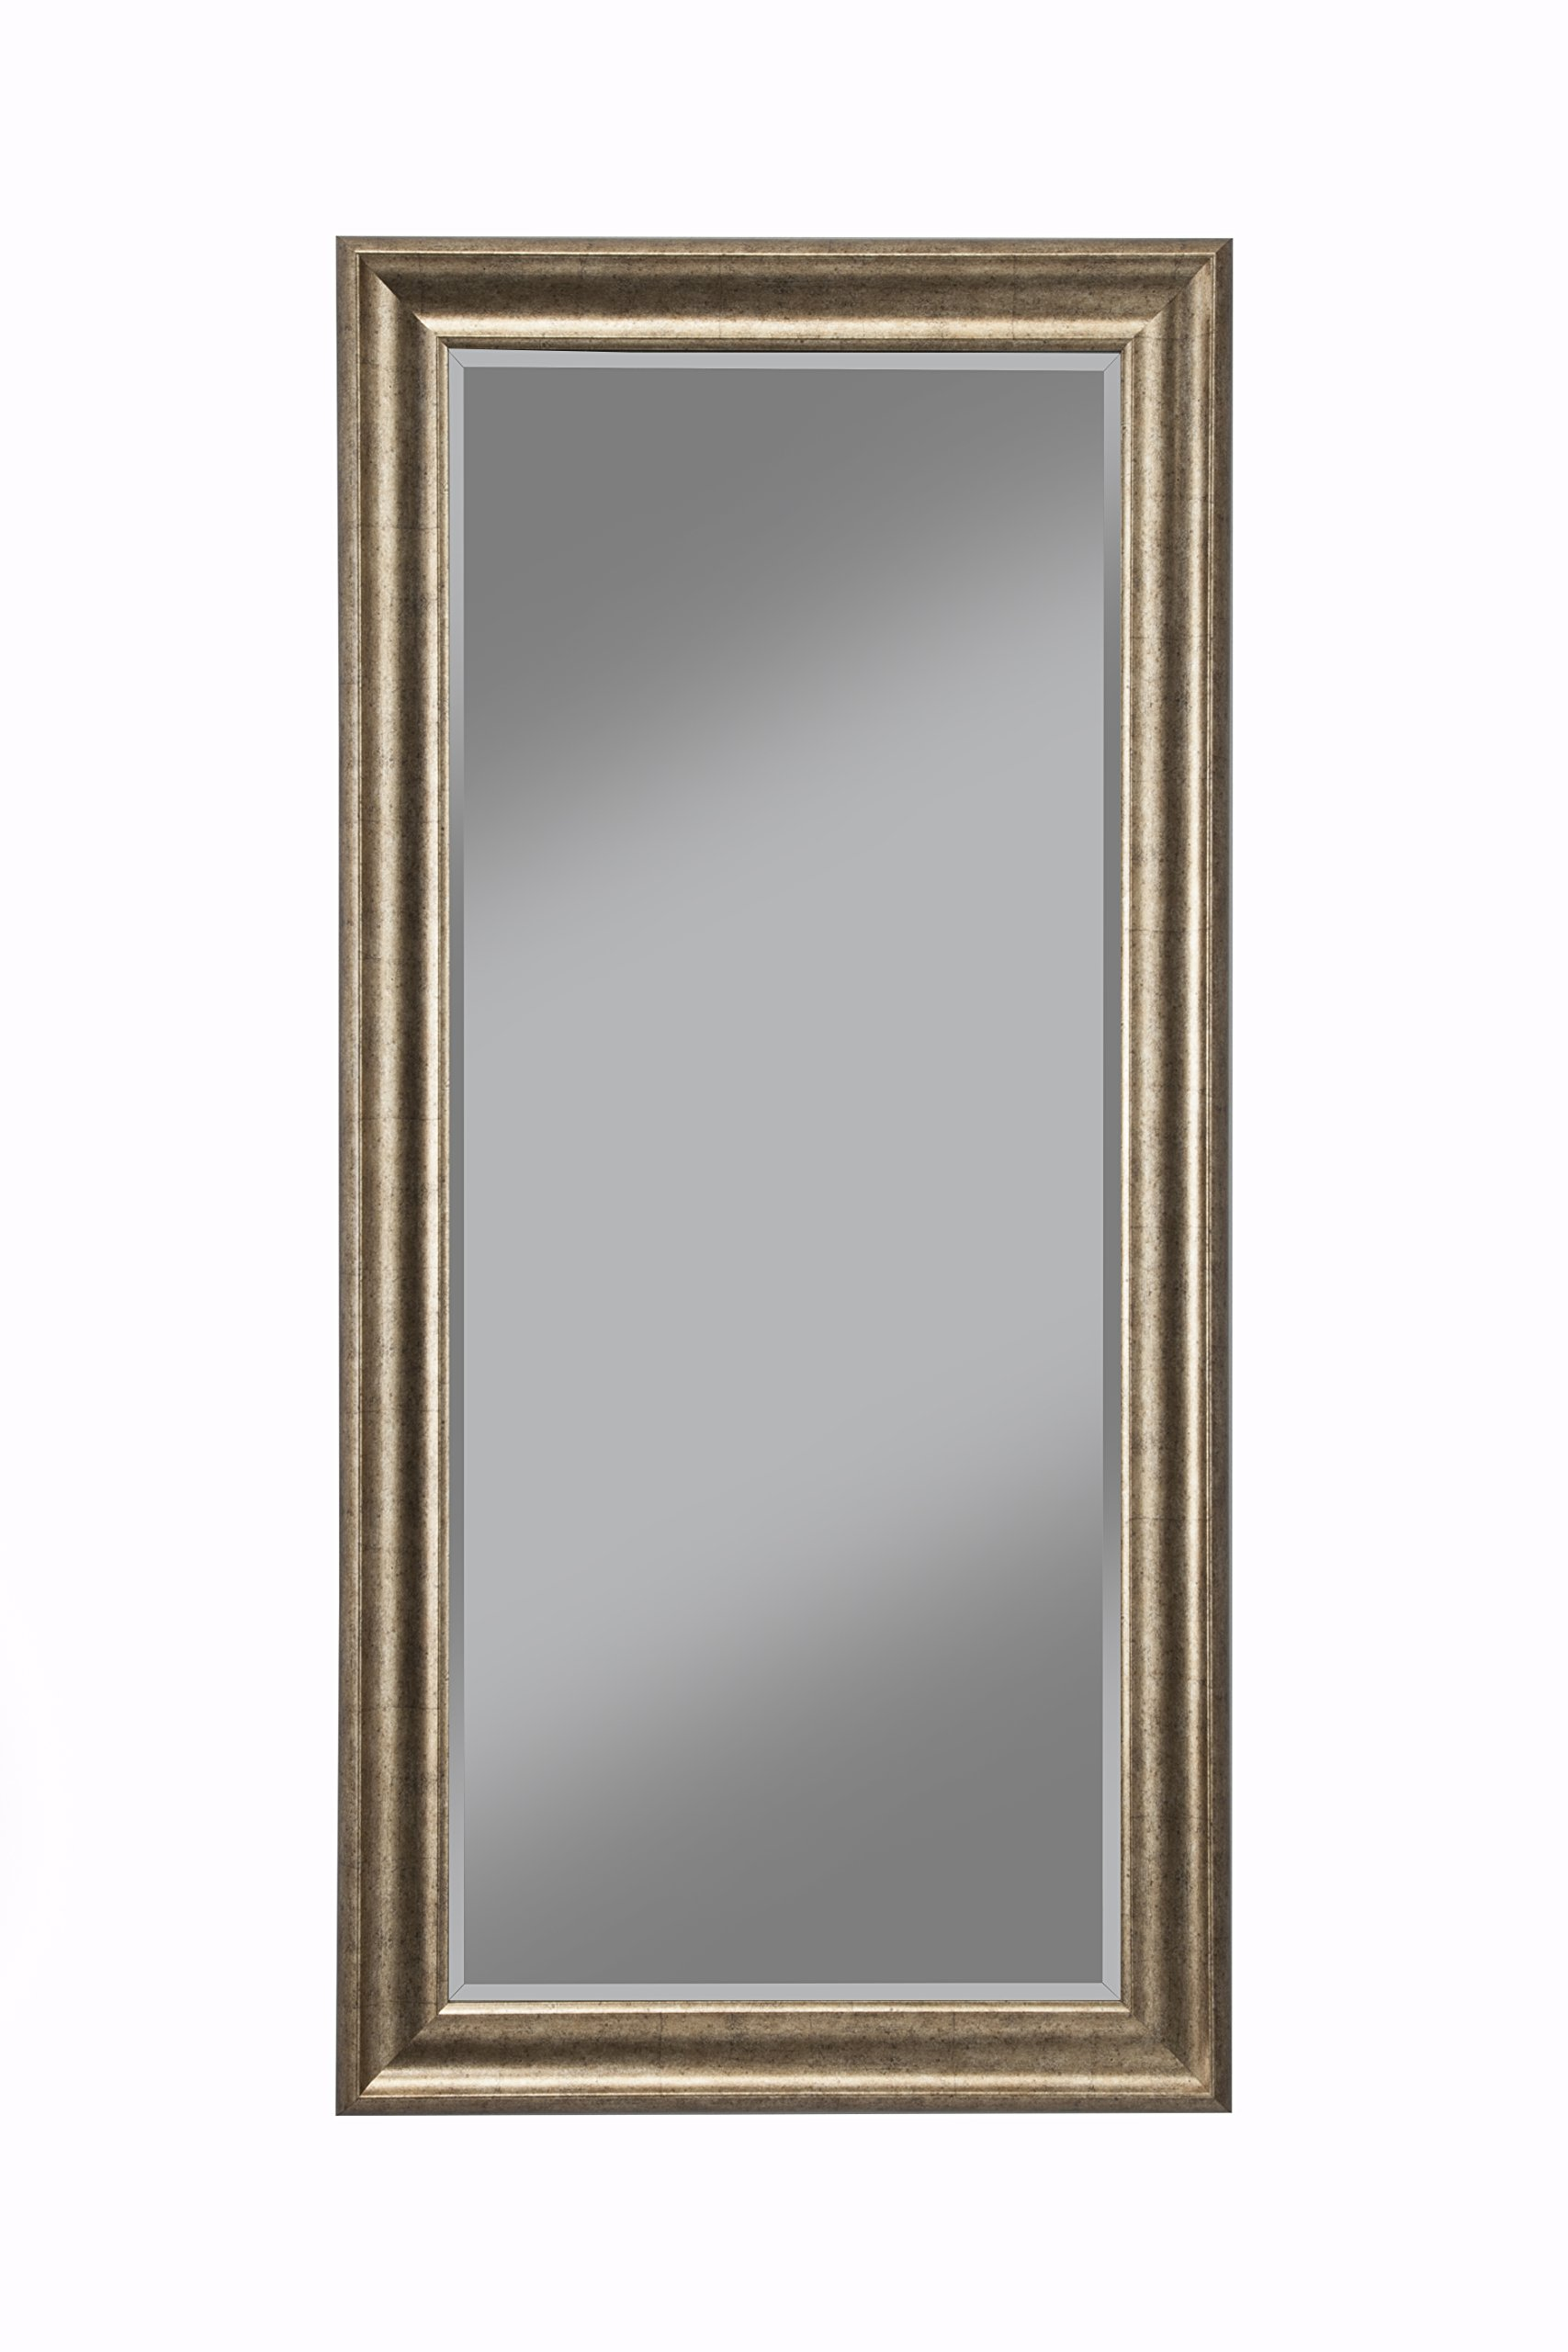 Sandberg Furniture 14111 Full Length Leaner Mirror Frame